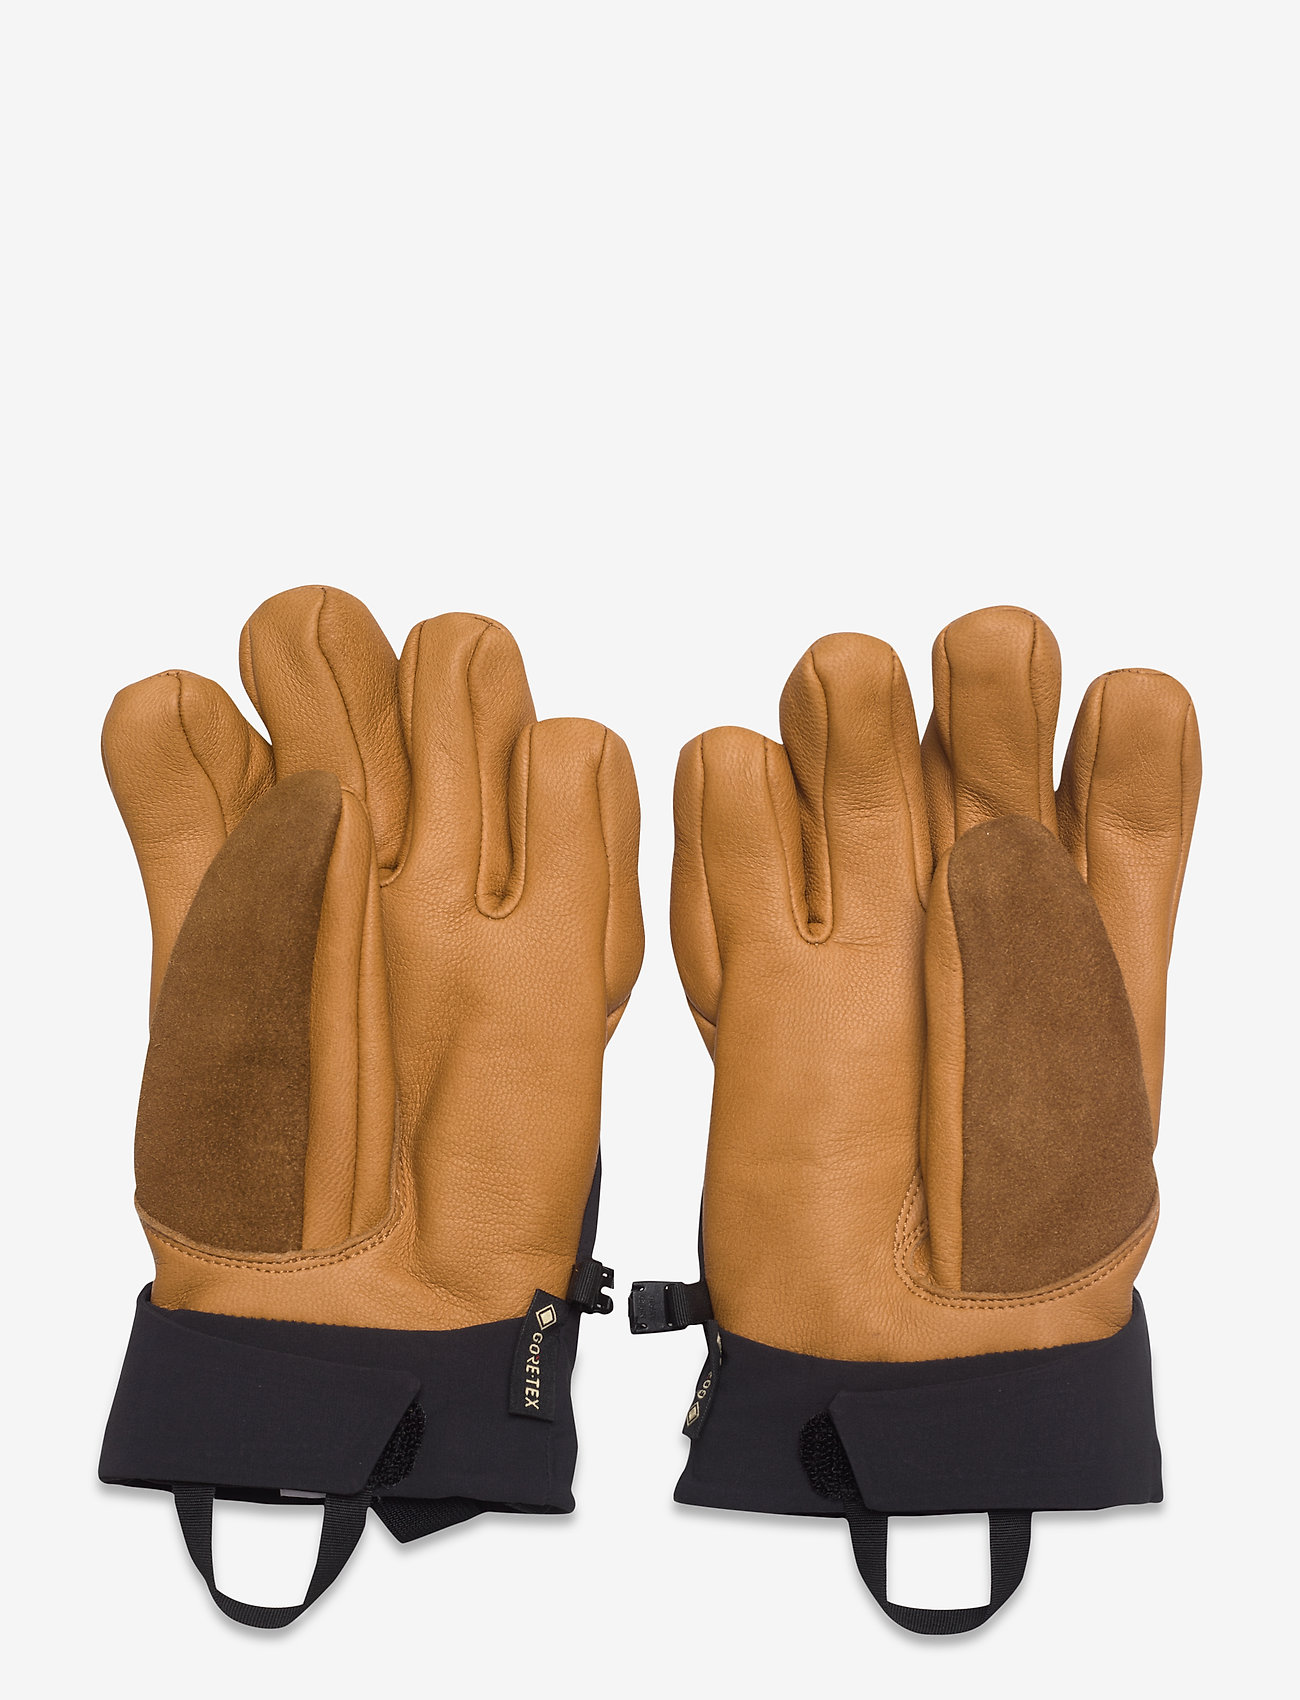 Norrøna - lofoten Gore-Tex thermo100 short Gloves Unisex - accessories - kangaroo - 1